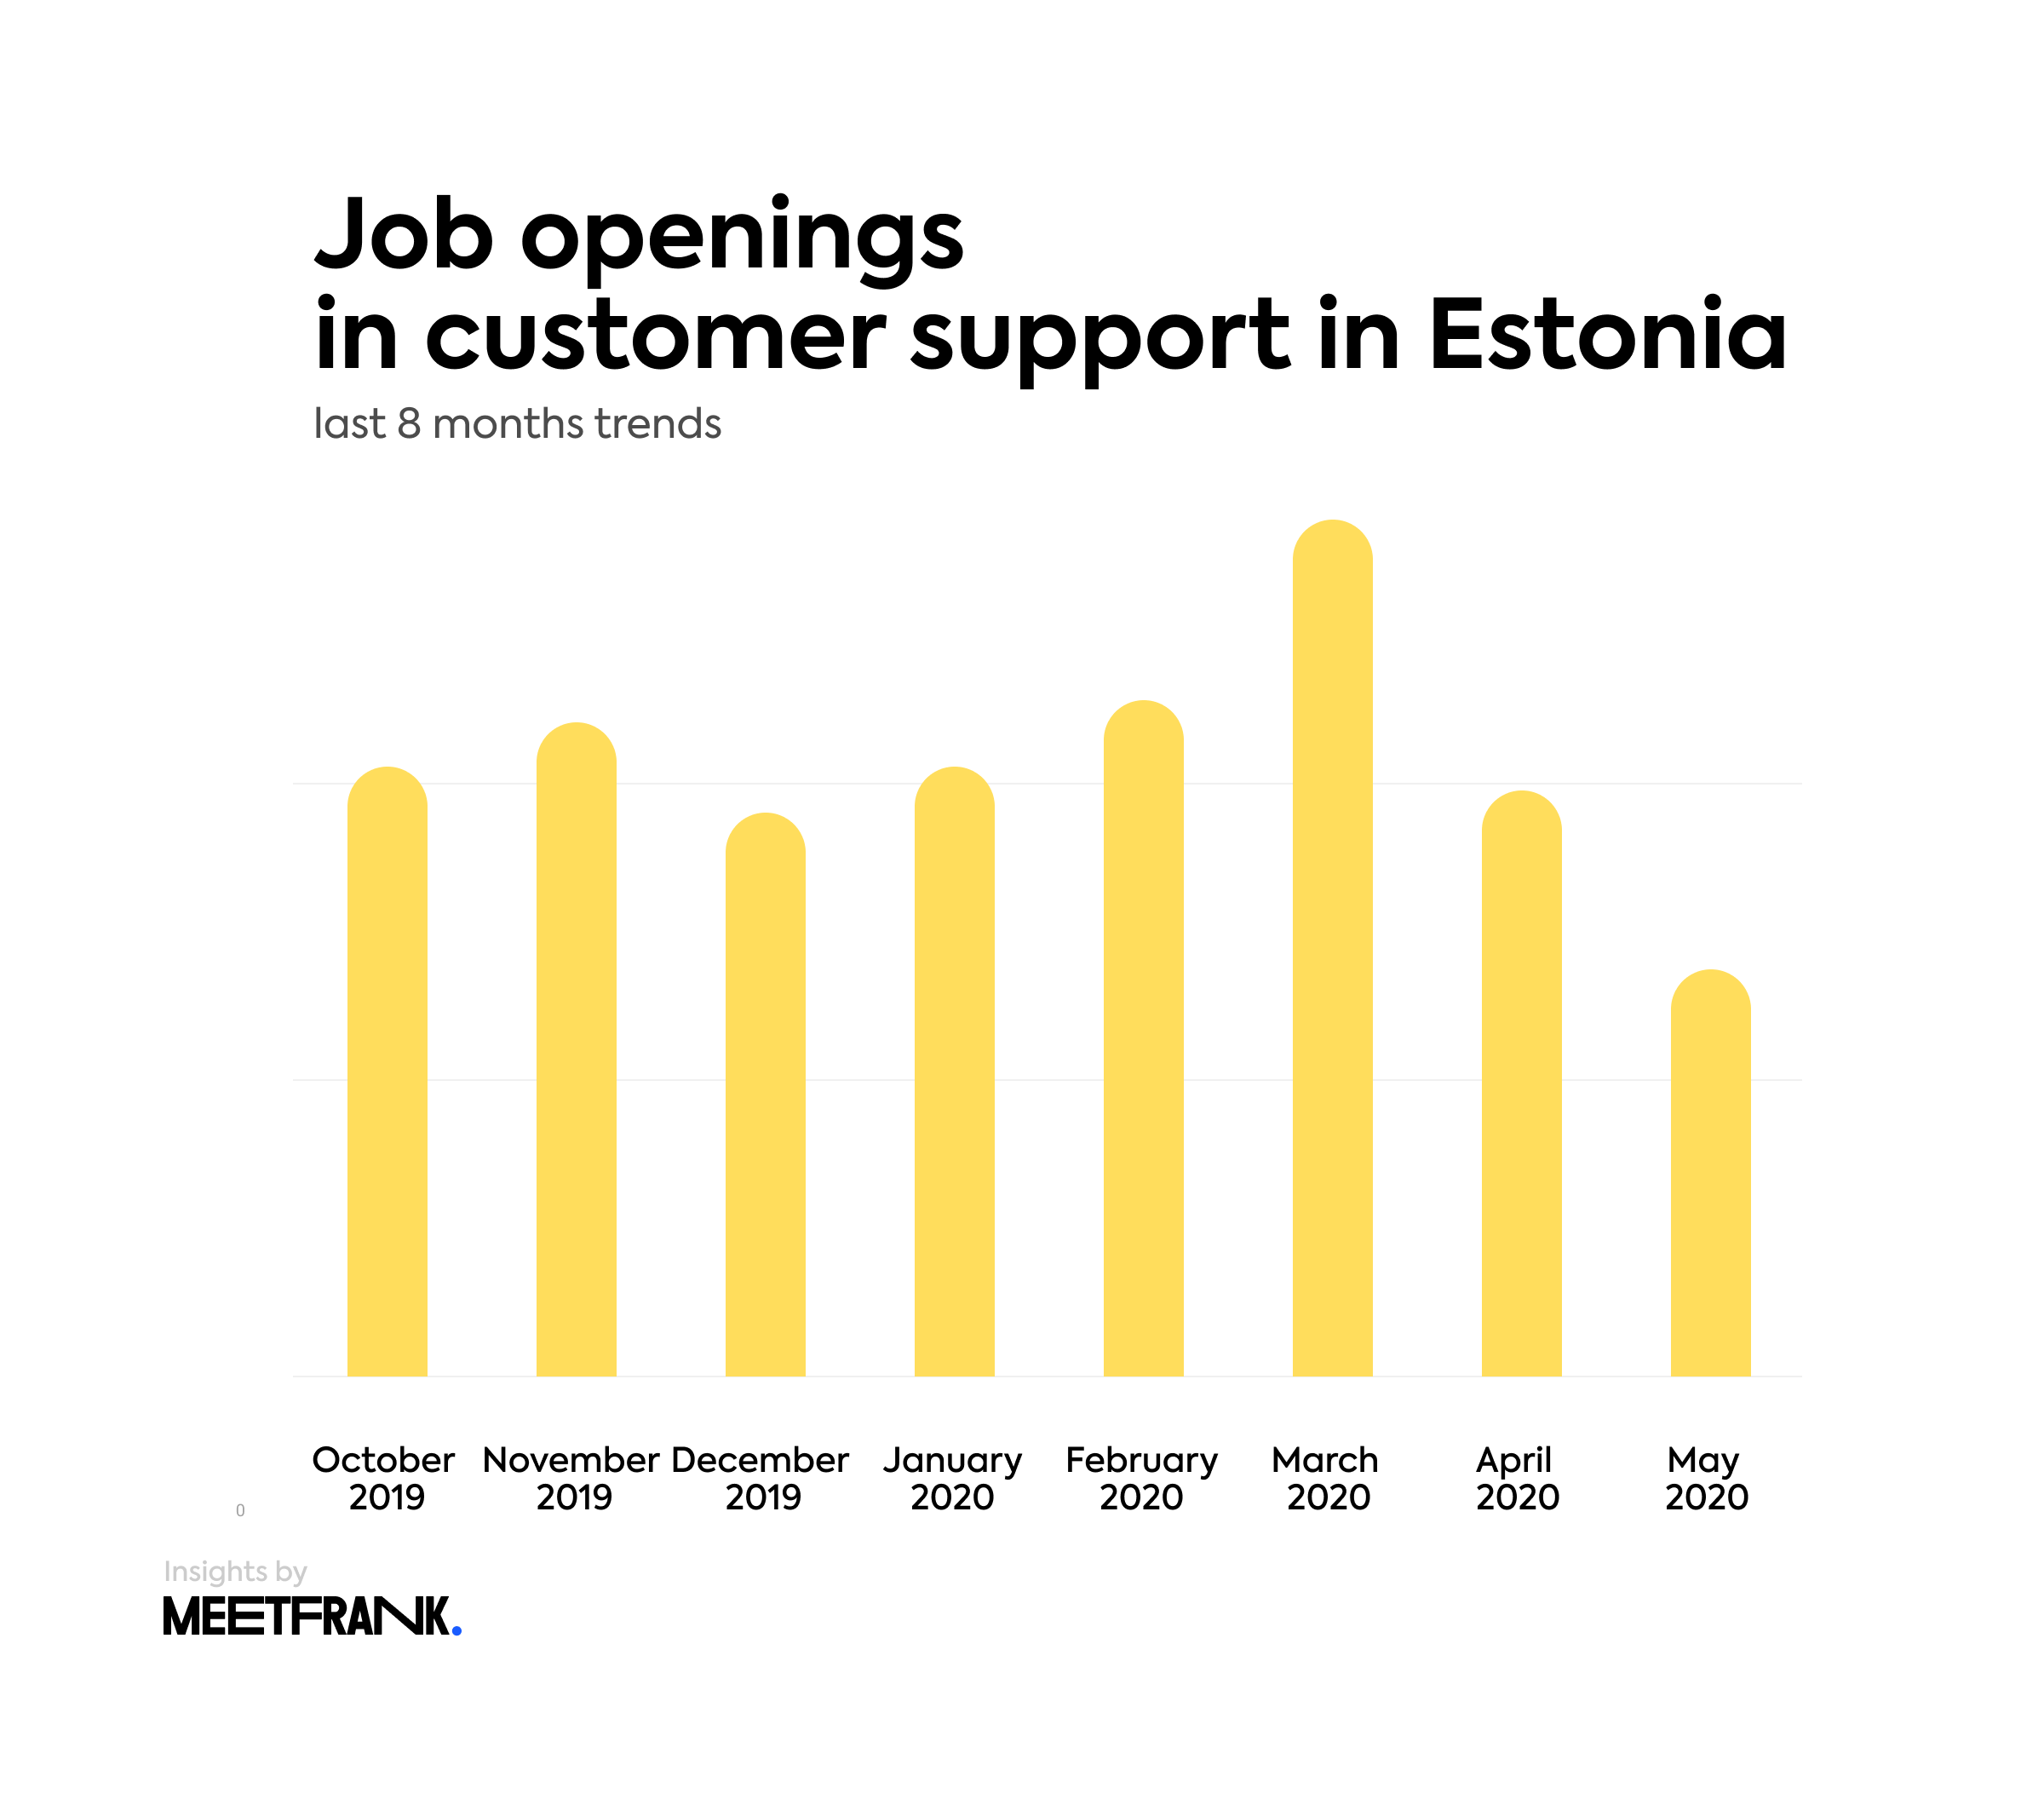 job openings in CS in Estonia